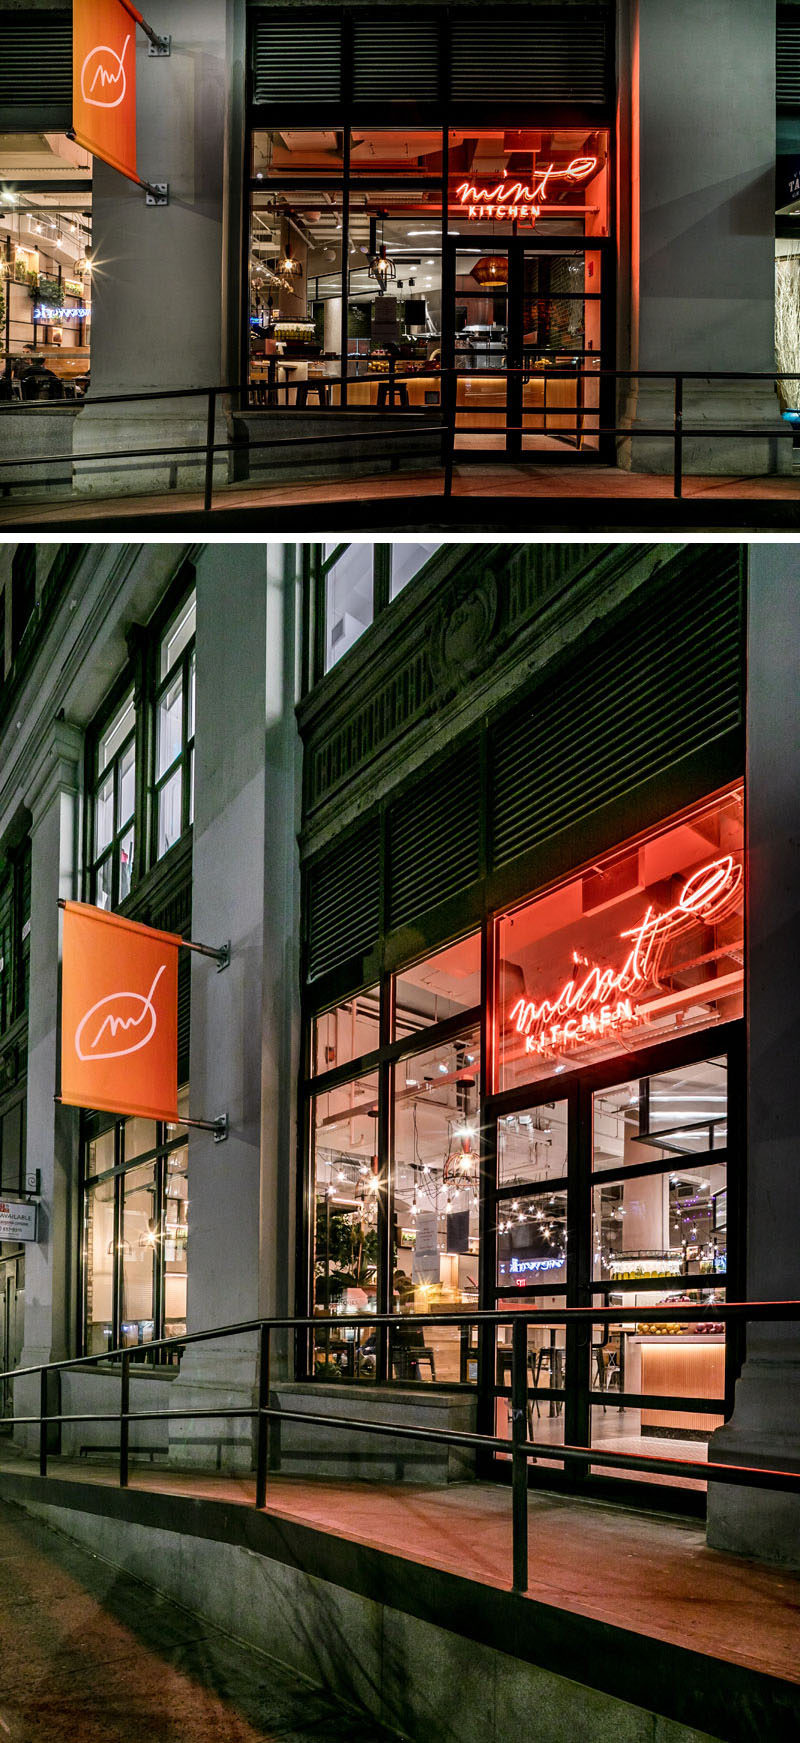 CRÈME / Jun Aizaki Architecture & Design has recently completed 'Mint Kitchen', a 50-seat Israeli fast casual restaurant, that's located in the heart of the West Village in New York. #RestaurantDesign #NeonLighting